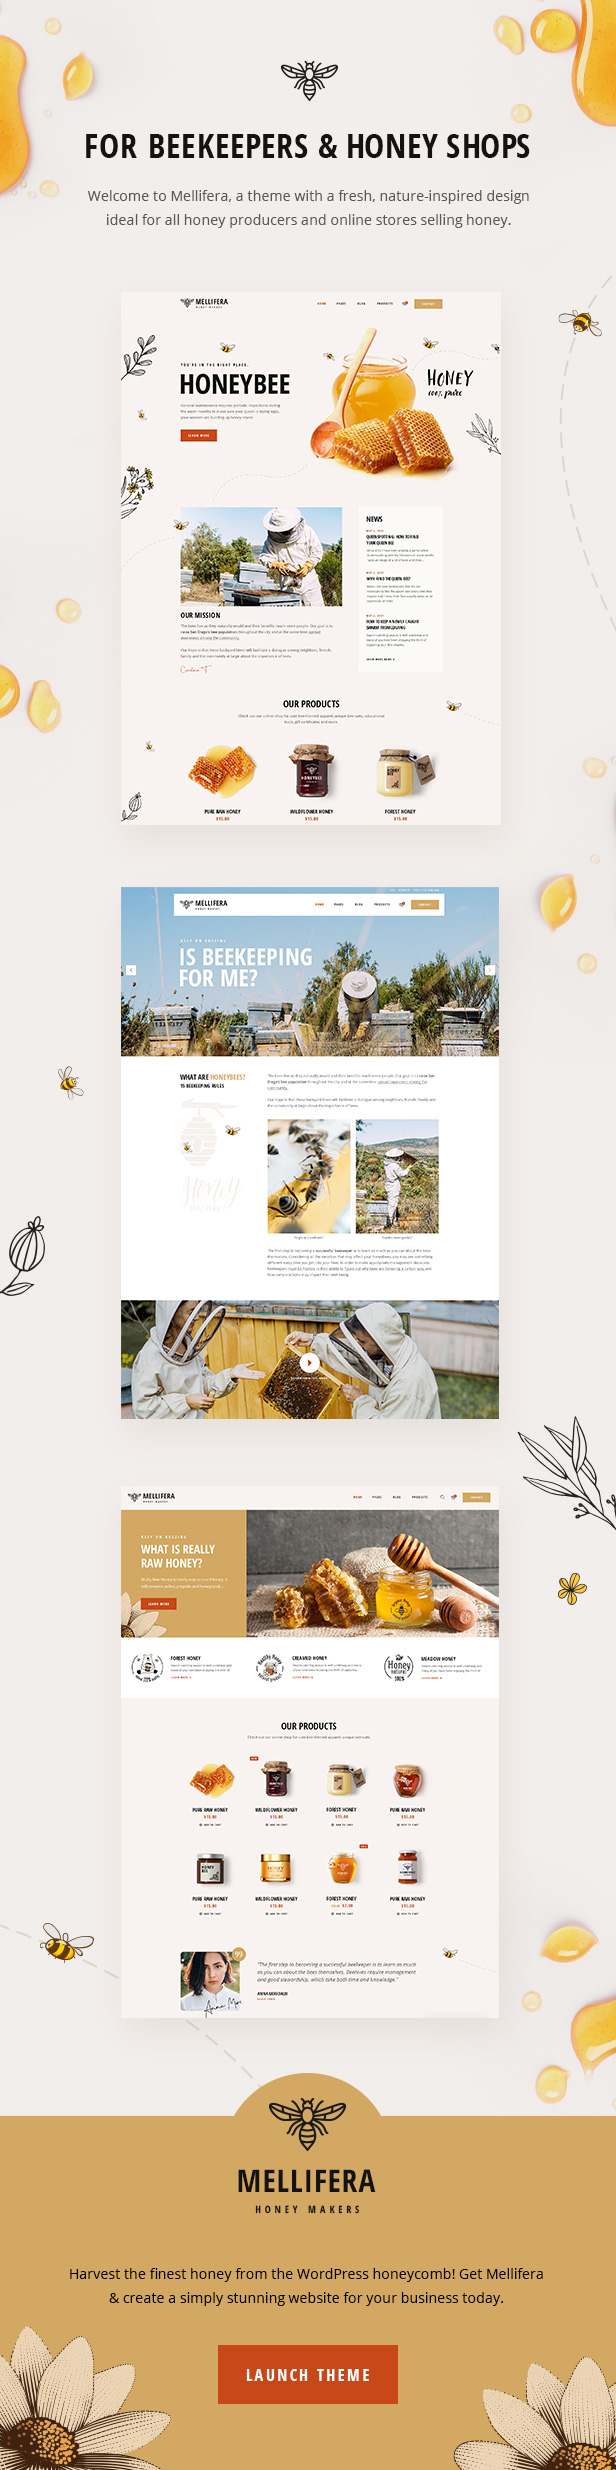 Mellifera - Beekeeping and Honey Shop Theme - 1